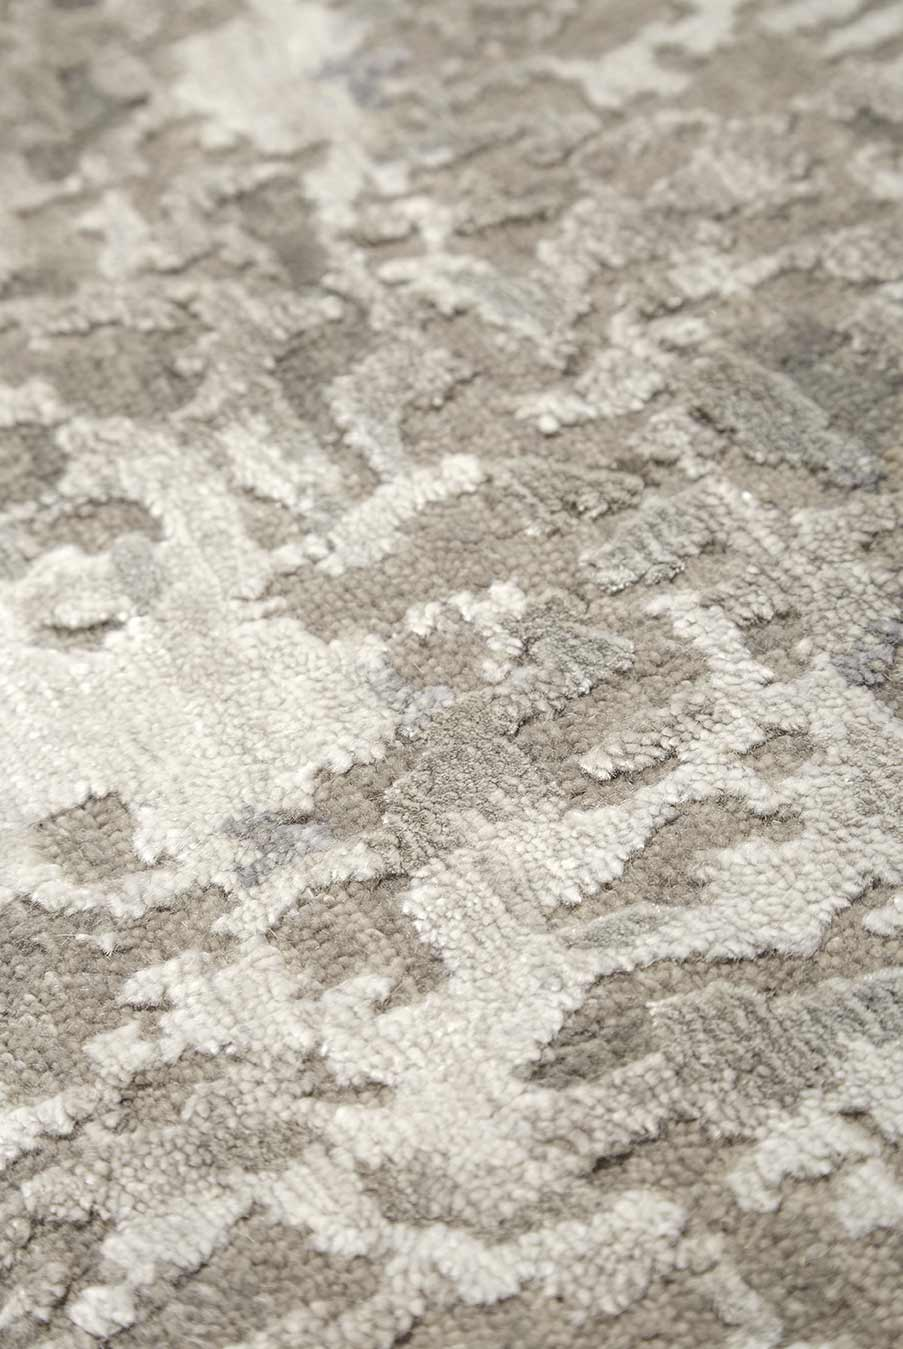 Detailed image of textured Midas handknot rug in silver colour